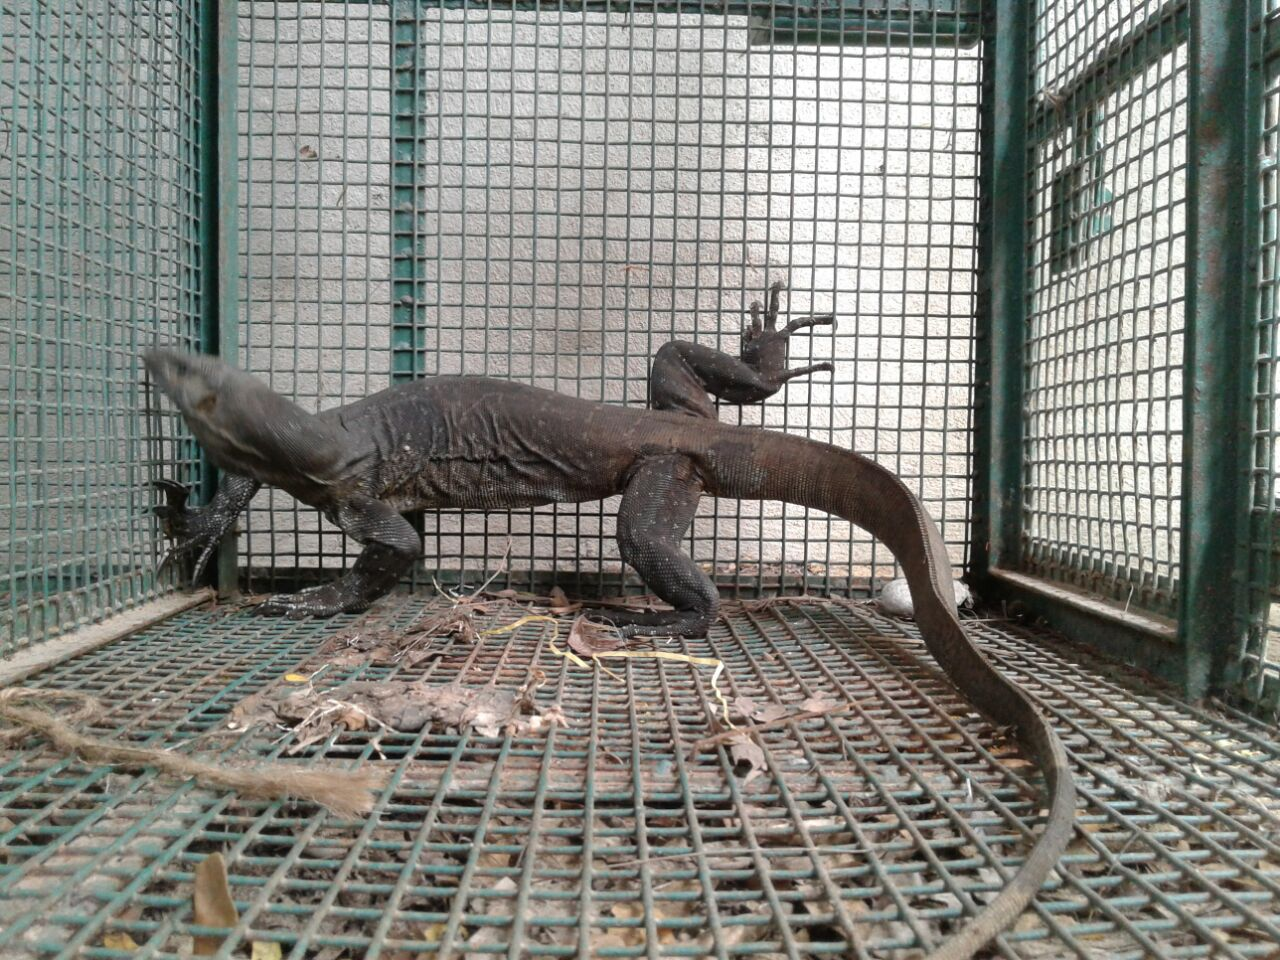 Injured Monitor Lizard found and rescued in Parampalli area